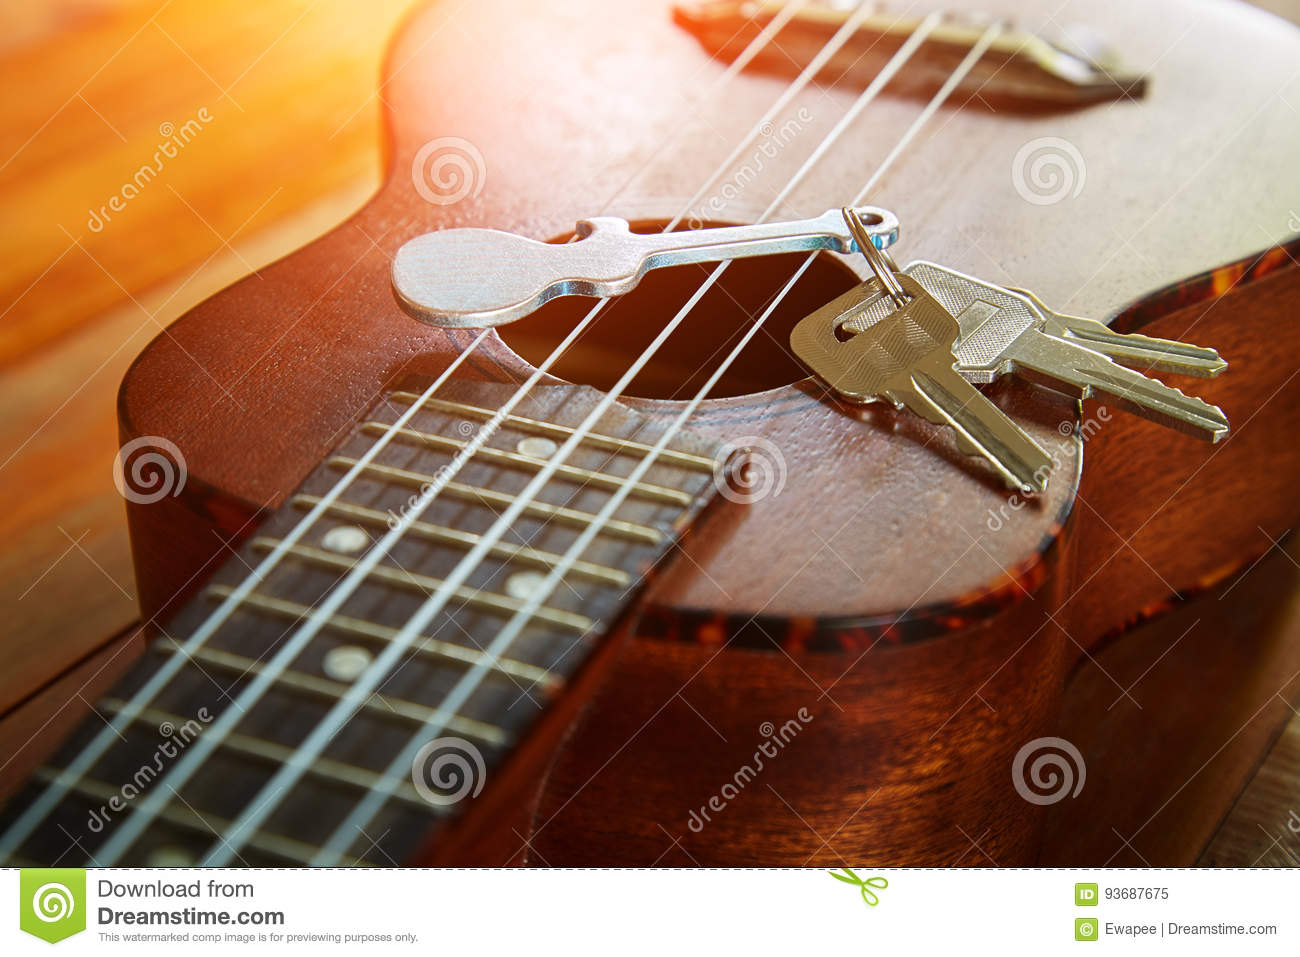 Key with keychain in form of guitar